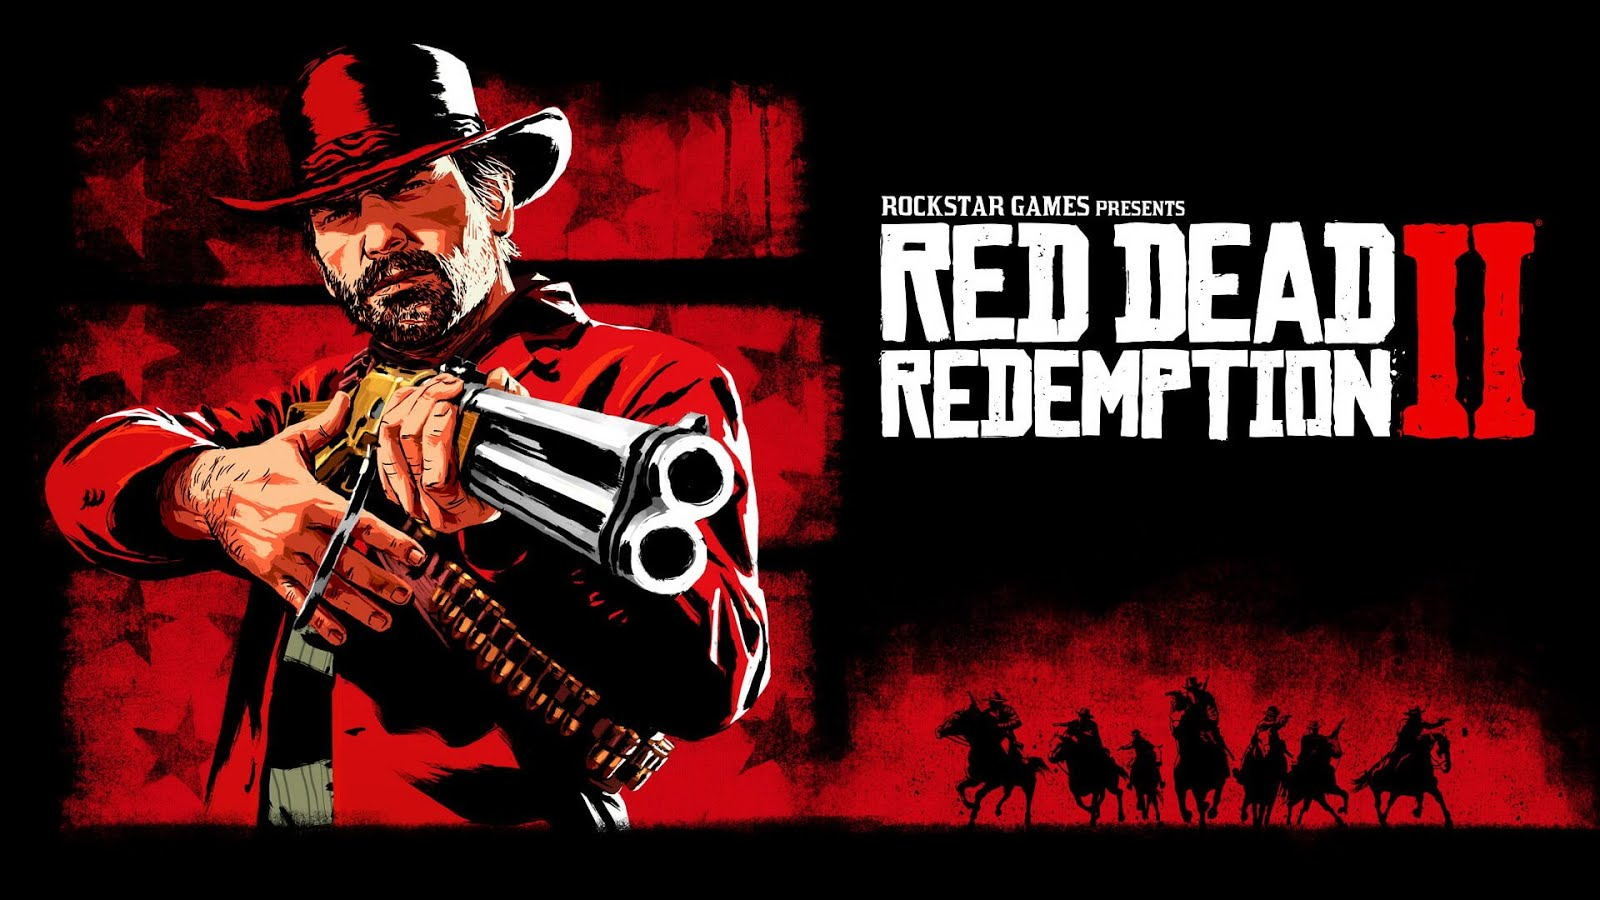 Pre-Order Red Dead Redemption II for PC